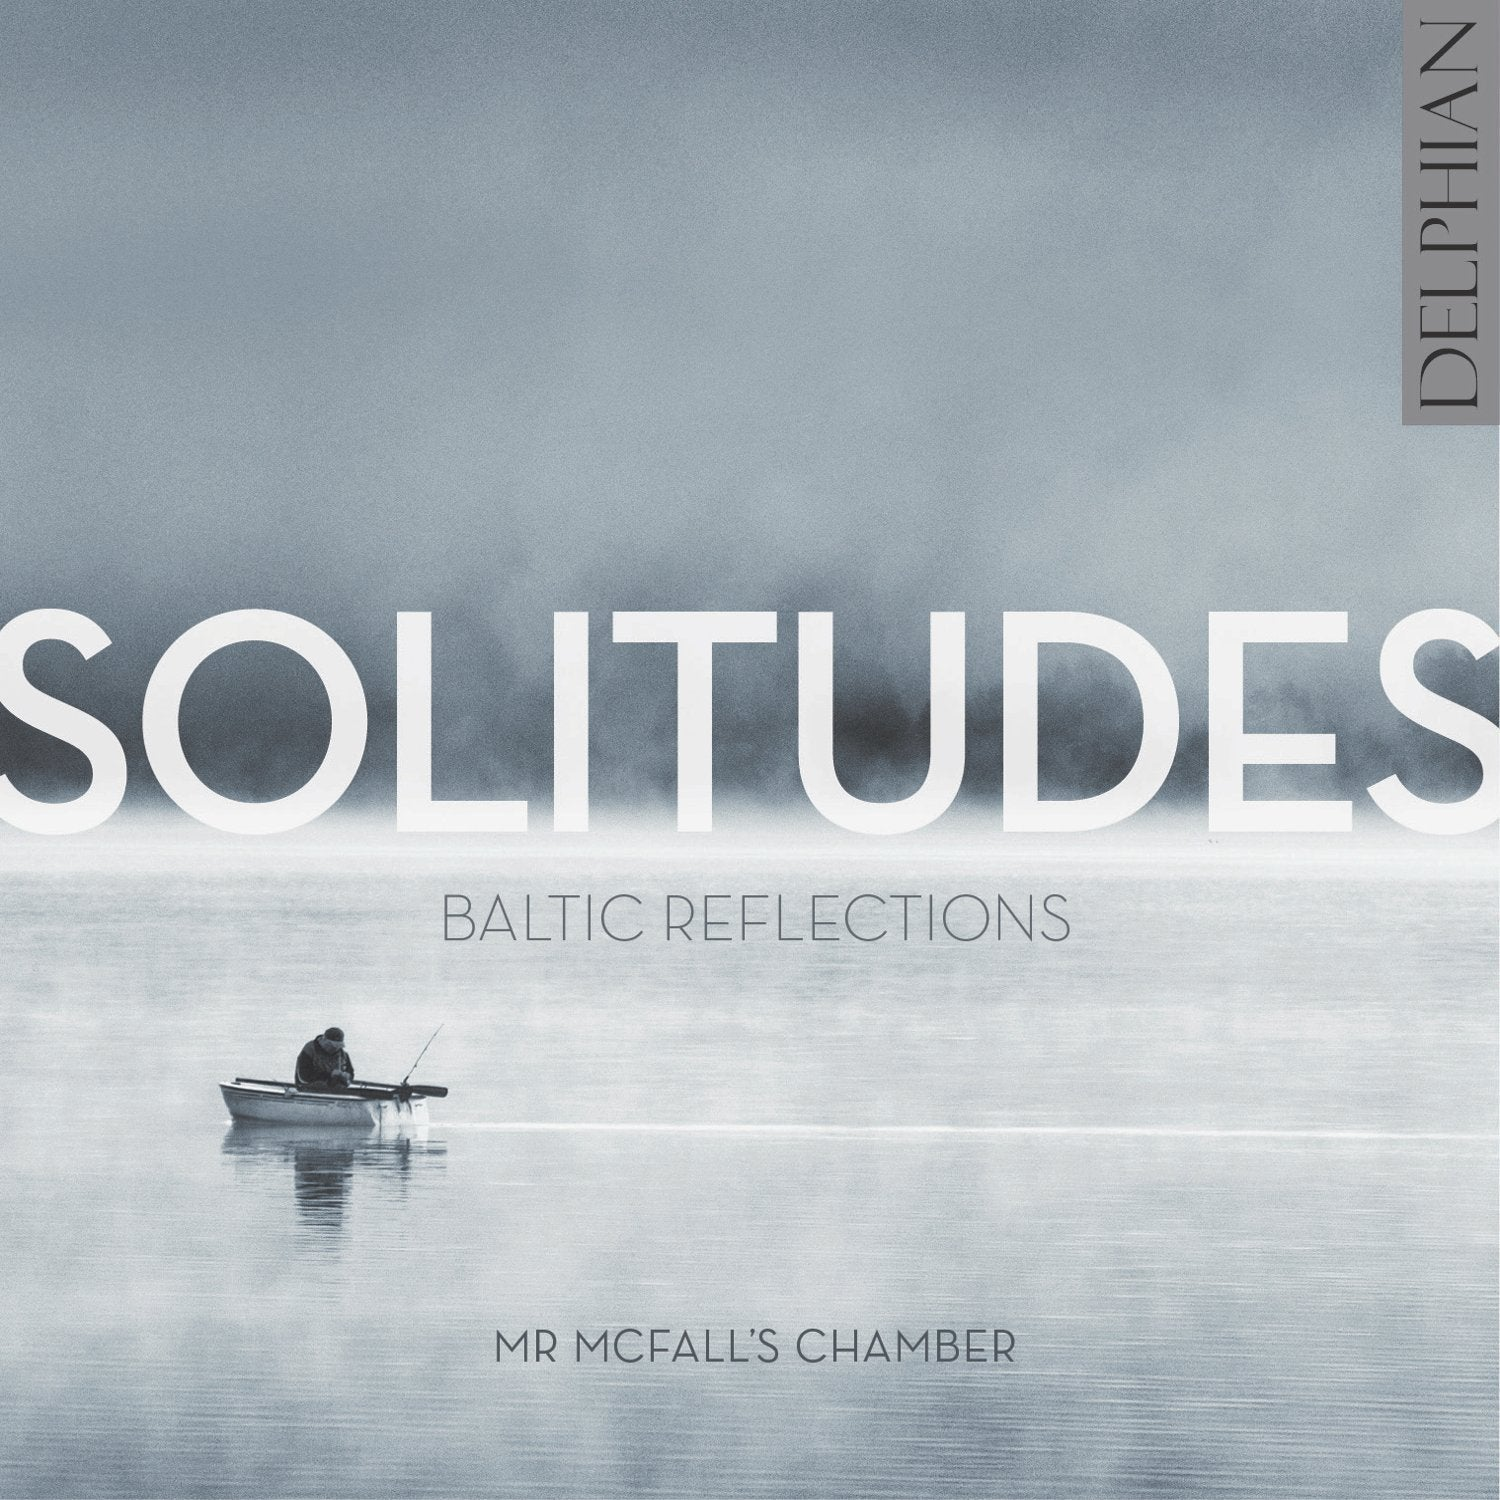 Solitudes: Baltic Reflections CD Delphian Records